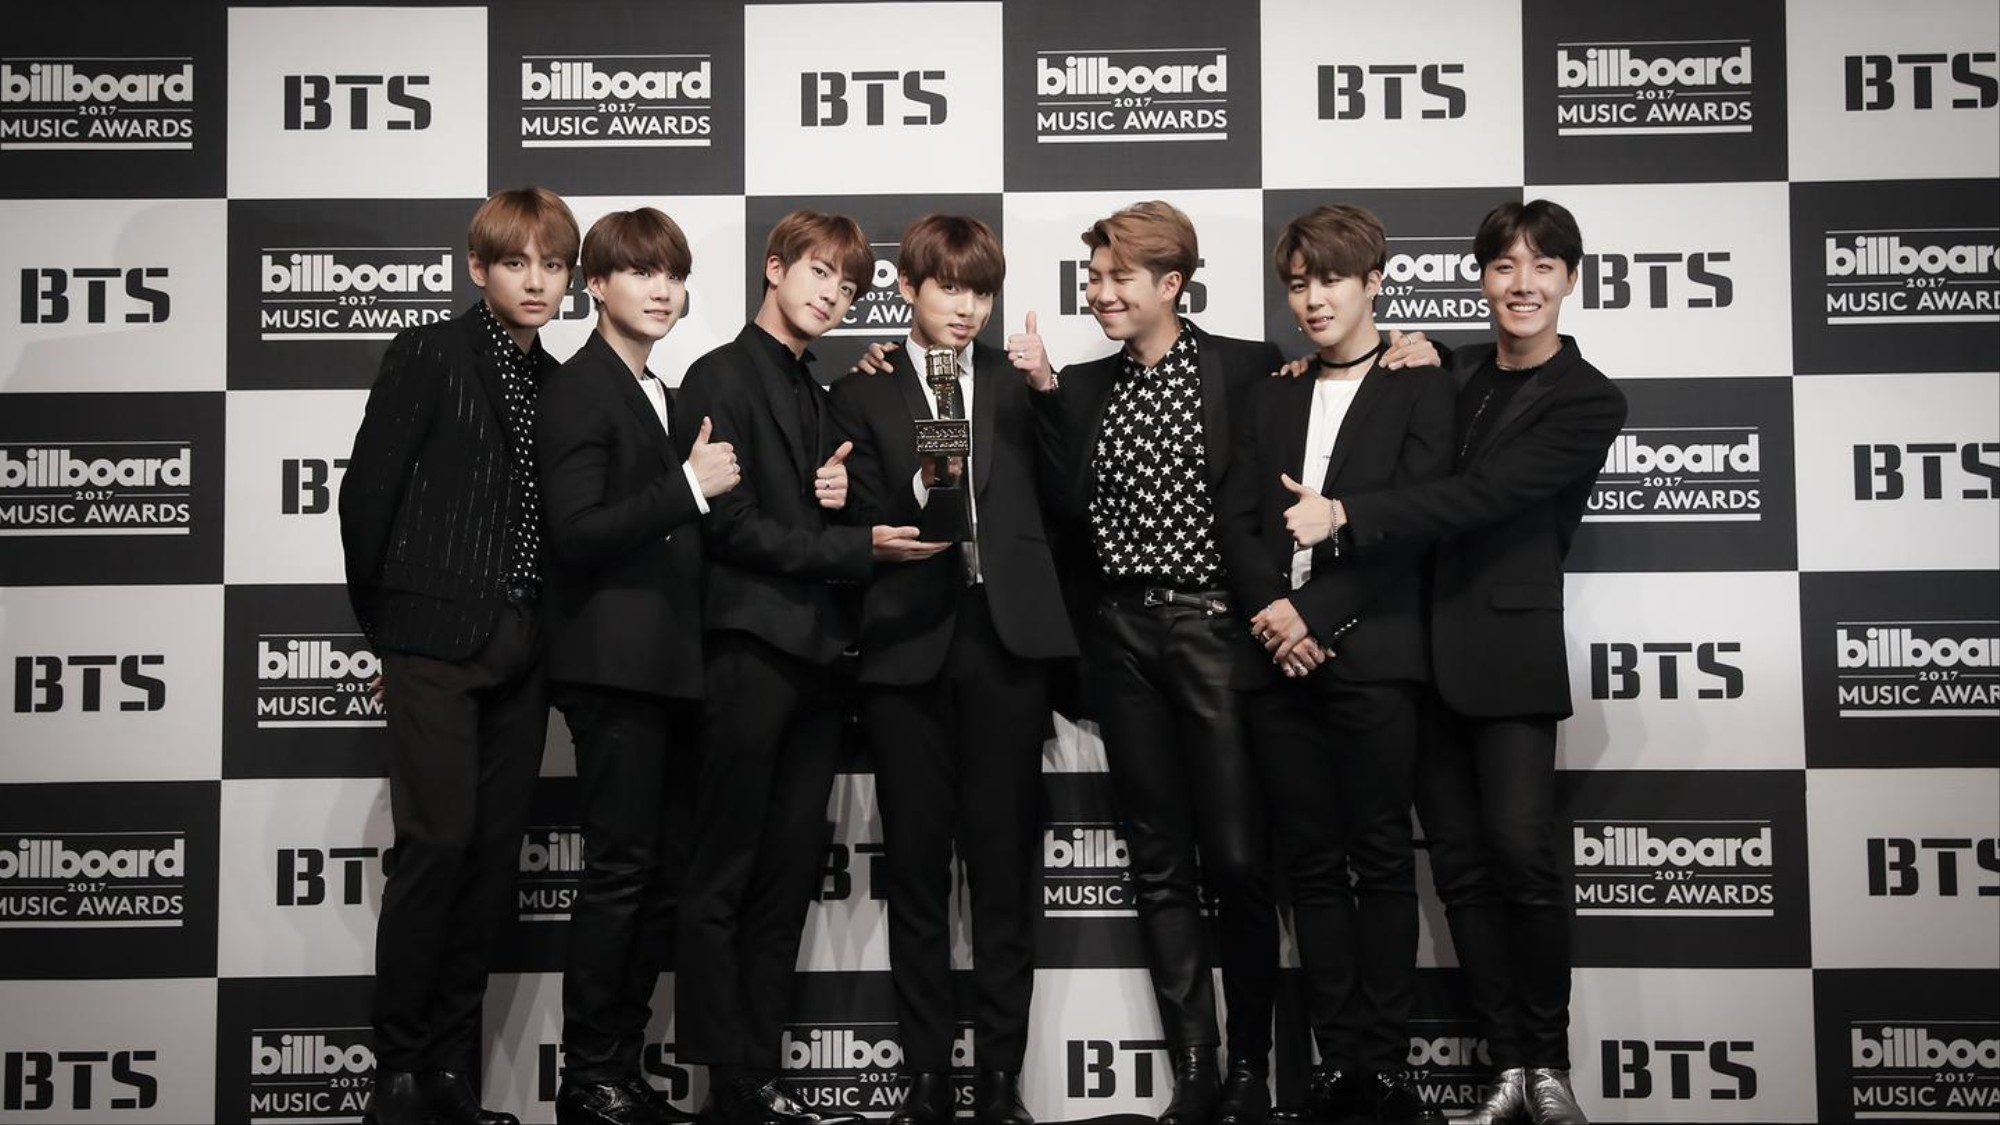 BTS Embody K-Pop's Present and Future Crossover - VICE